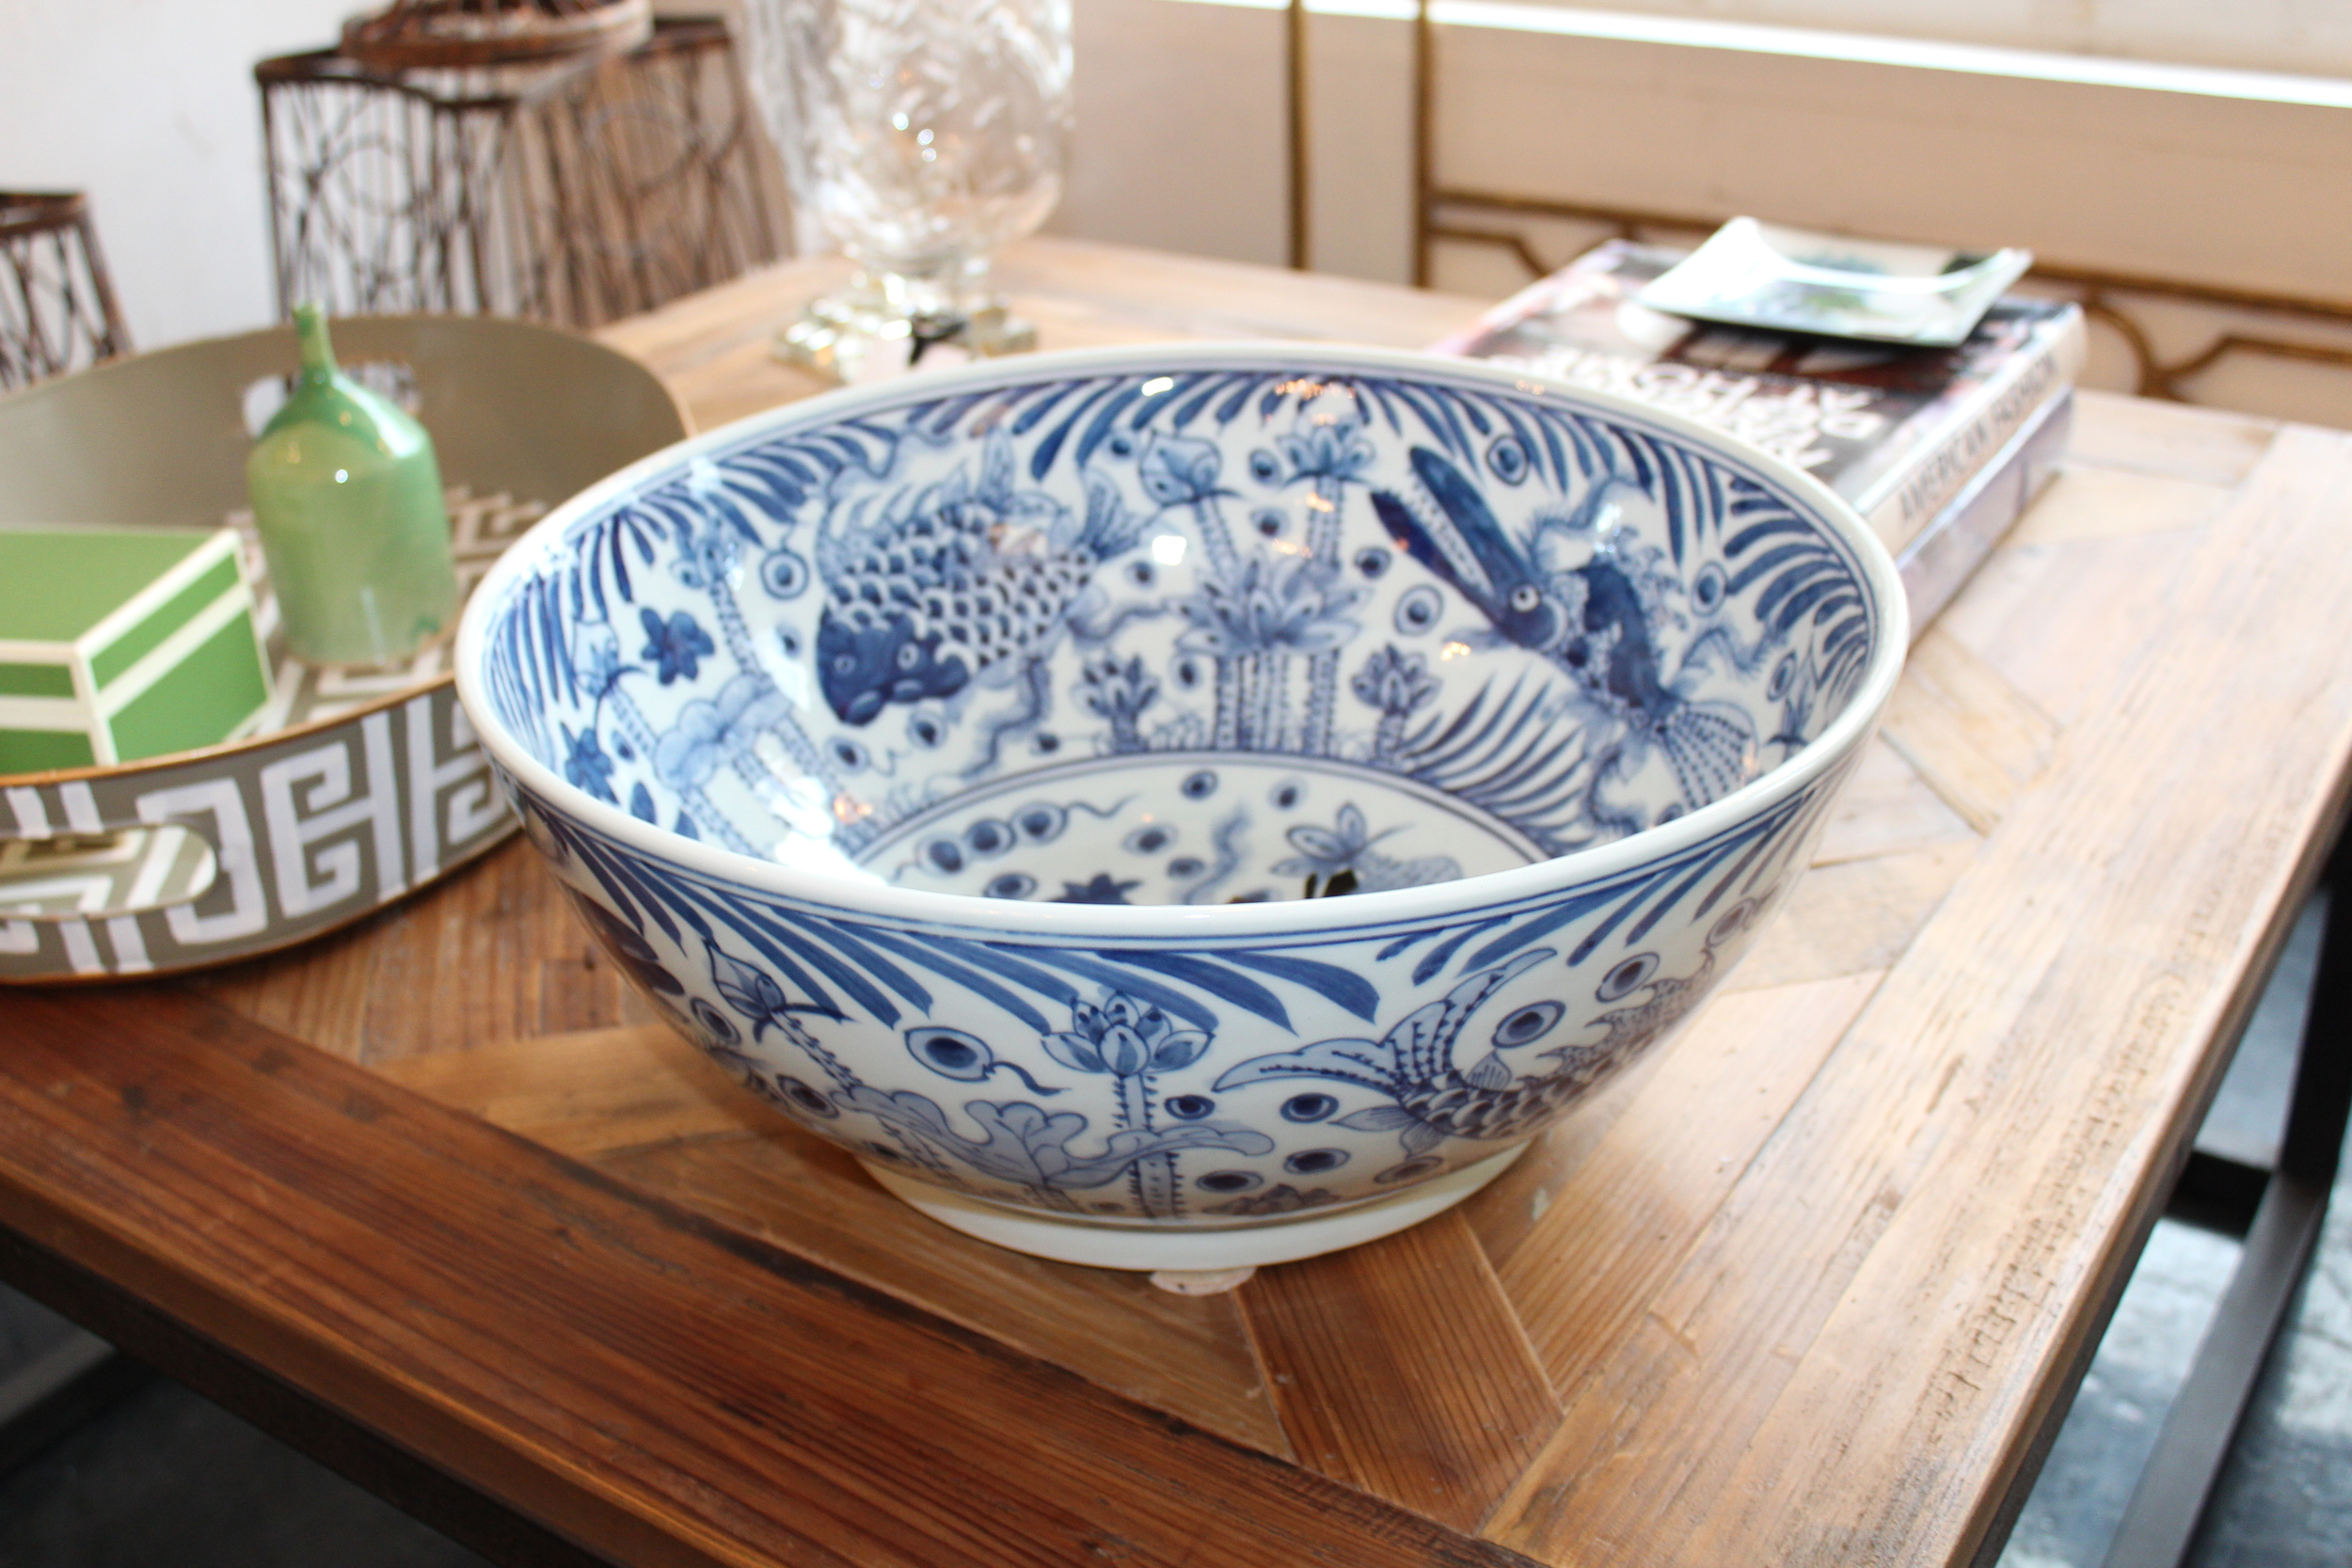 BLUE AND WHITE FISH BUDDA BOWL